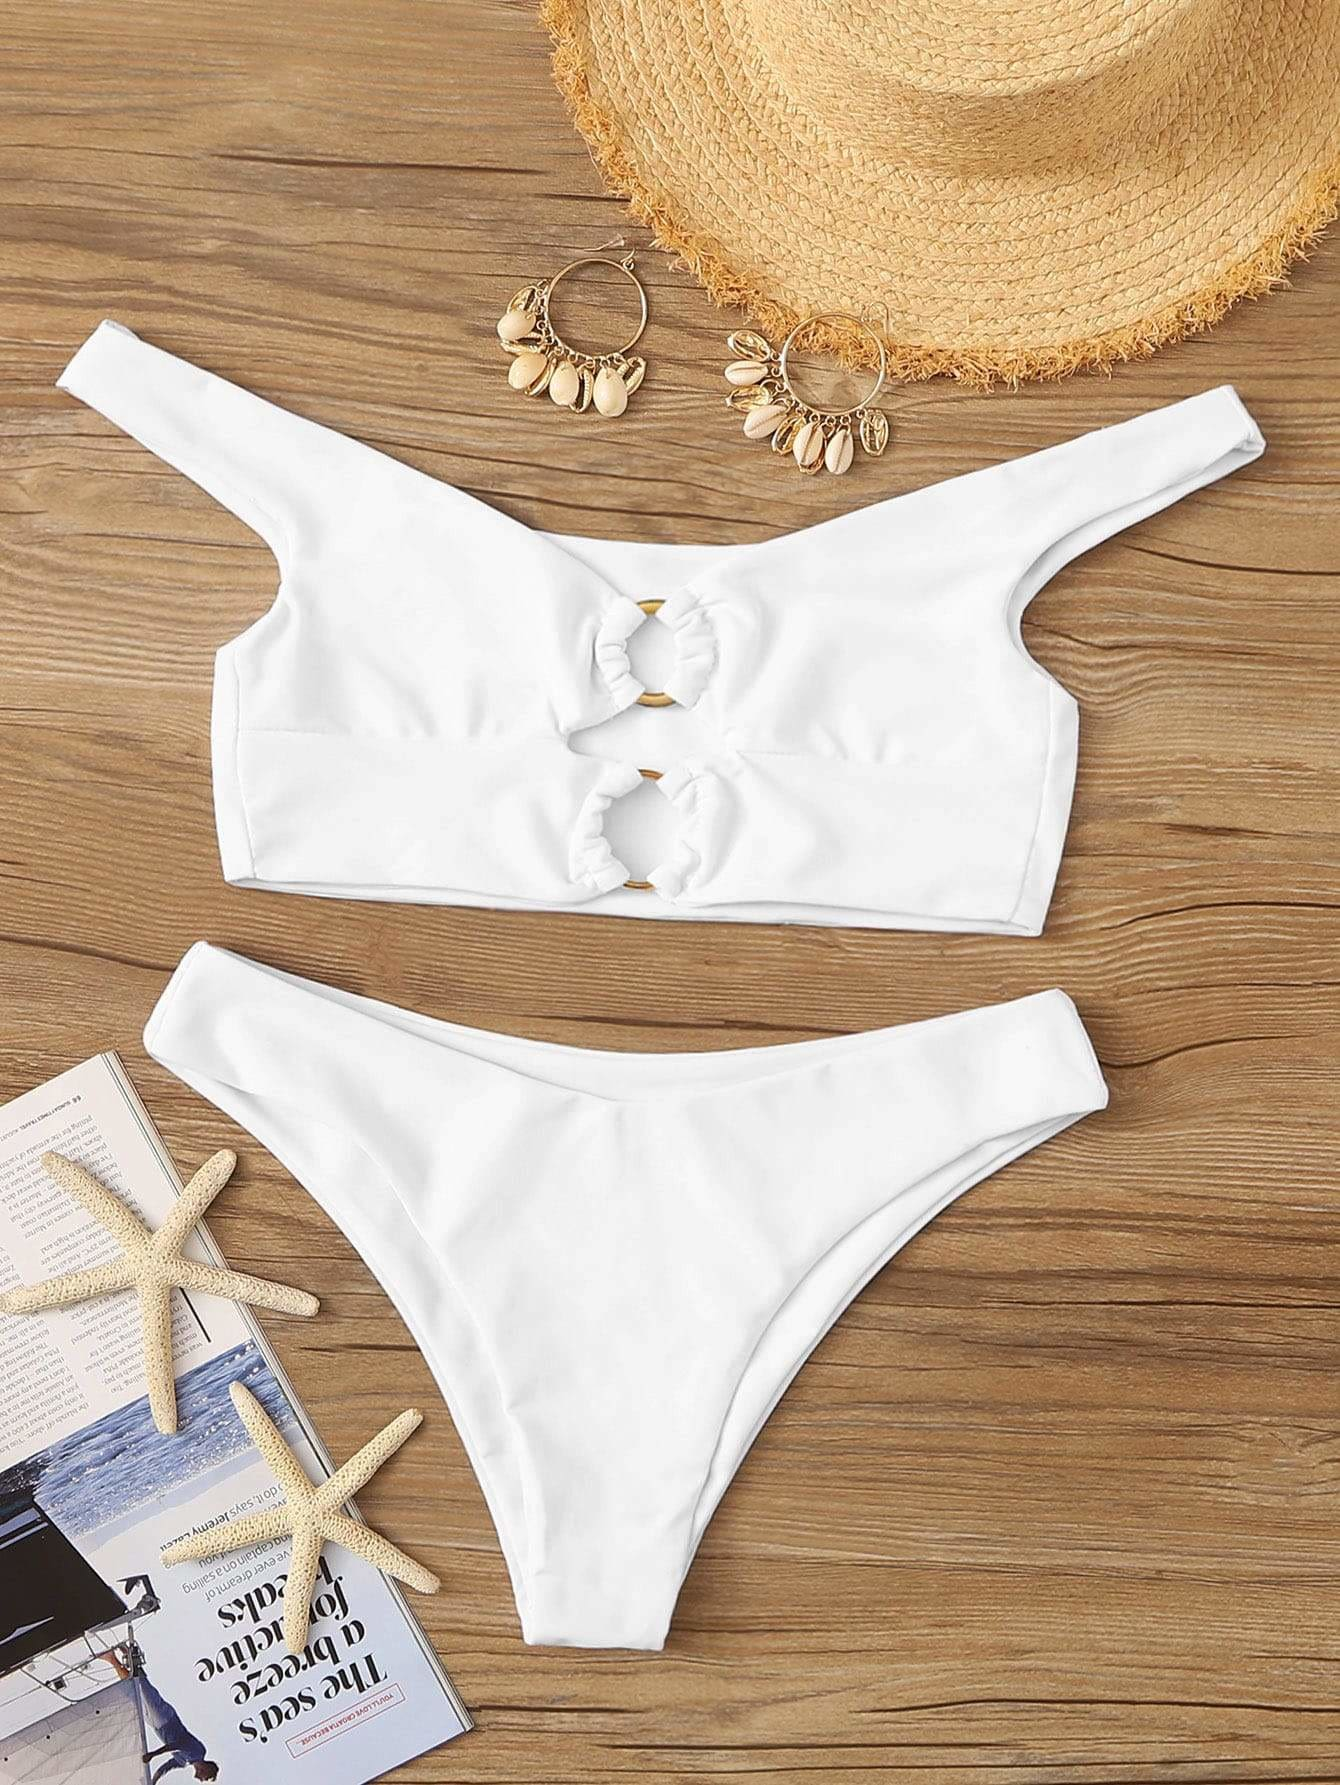 Plus Cut Out Top With High Cut Bikini Set - S - Bikini